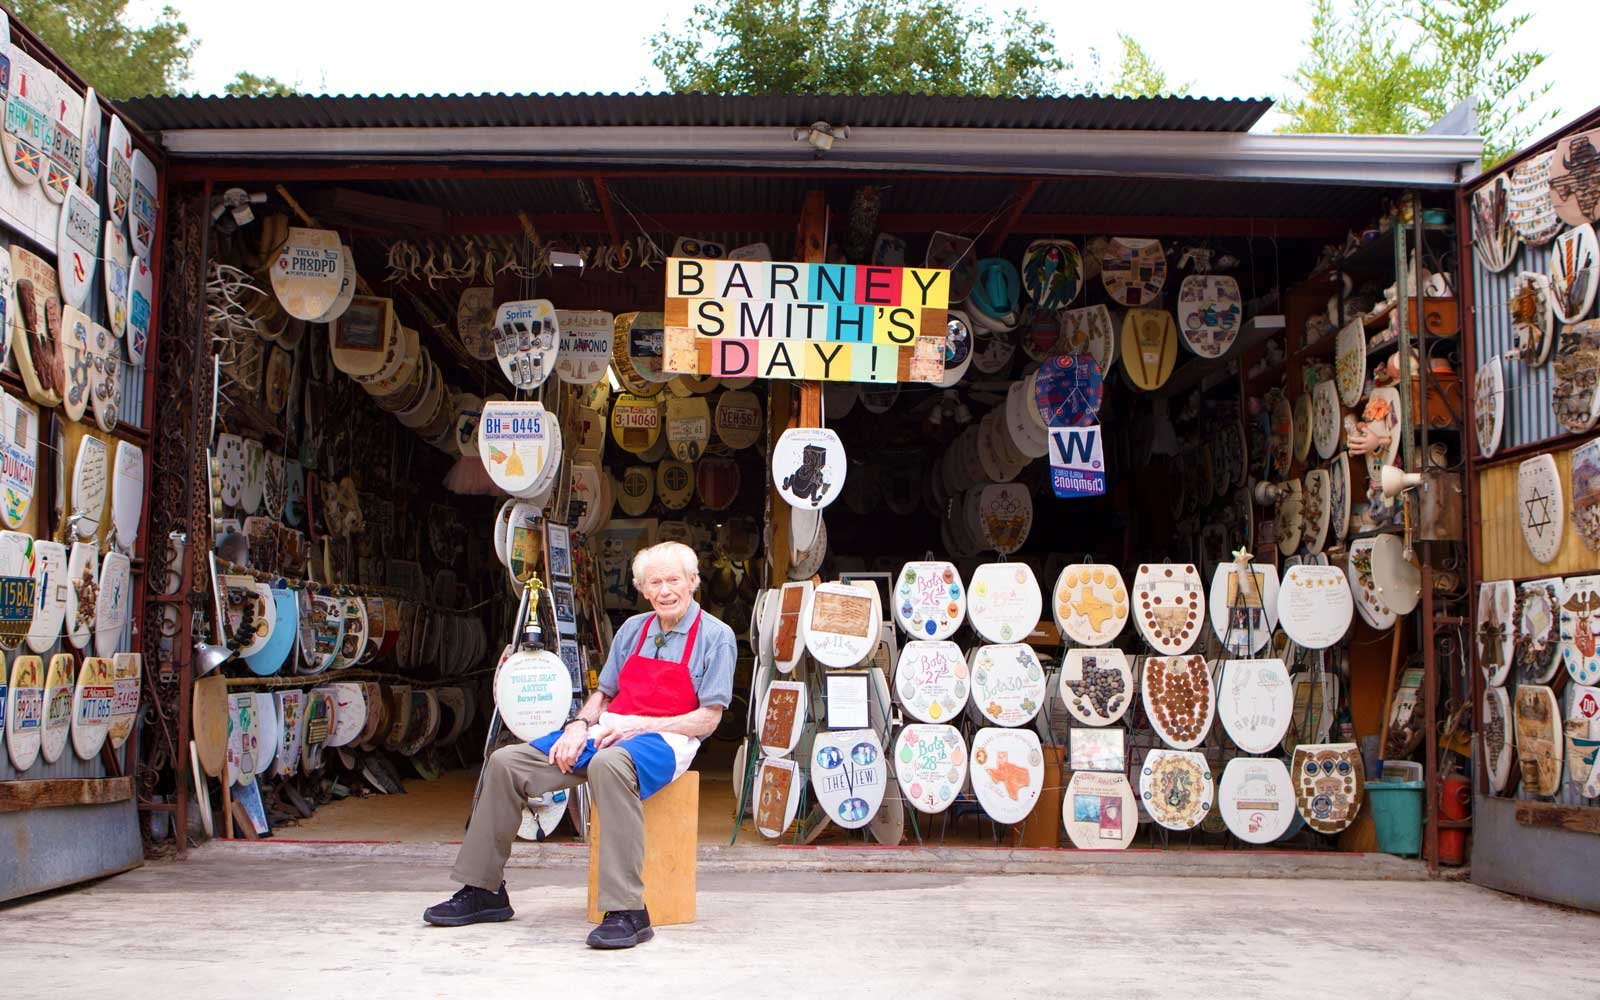 At 96 Years Old Barney Smith Is Putting His Toilet Seat